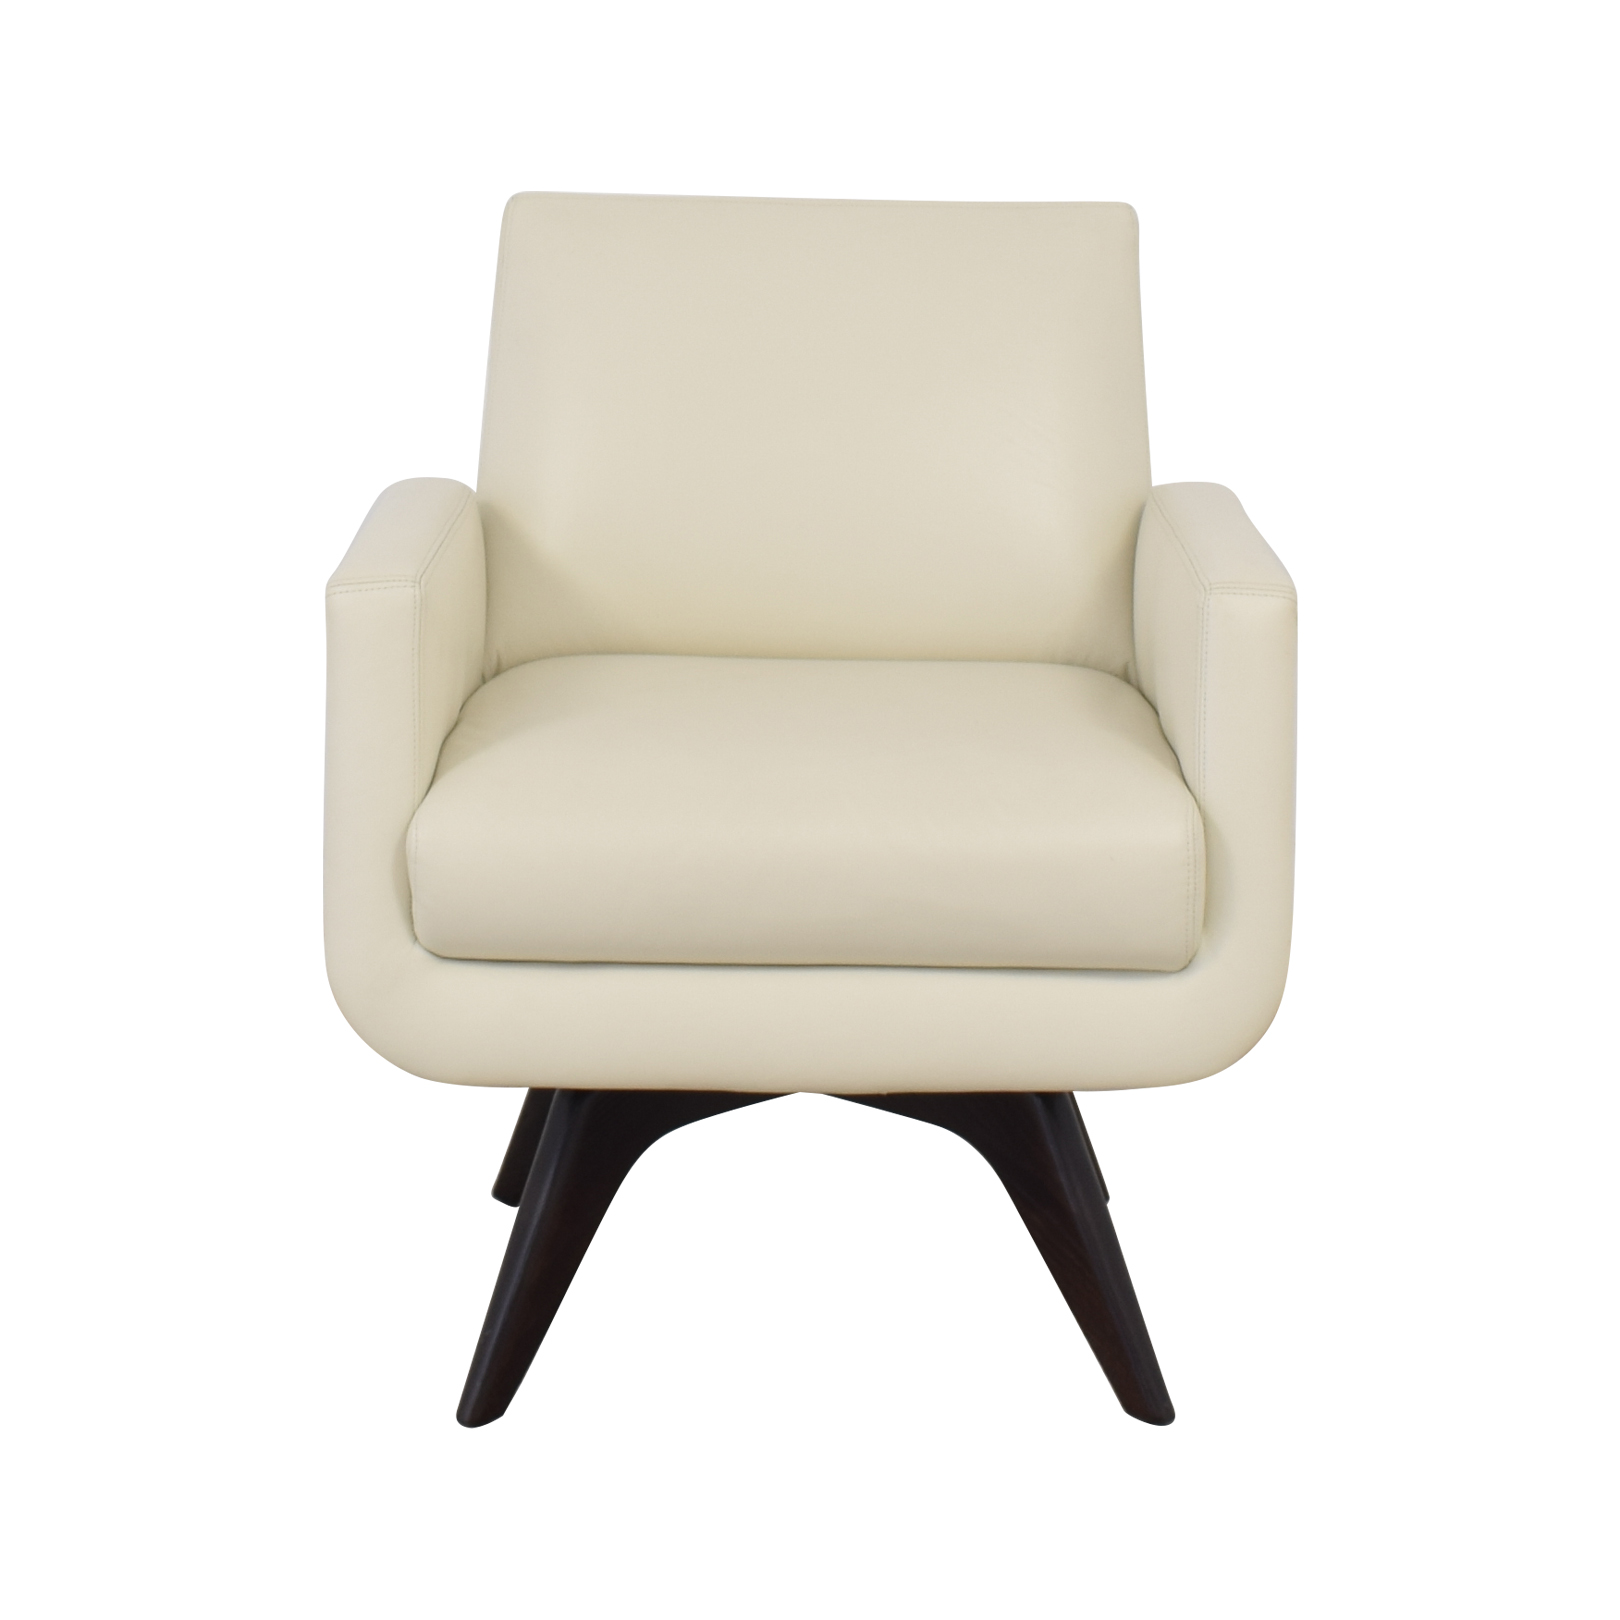 Interlude Home Interlude Home Landon Chair